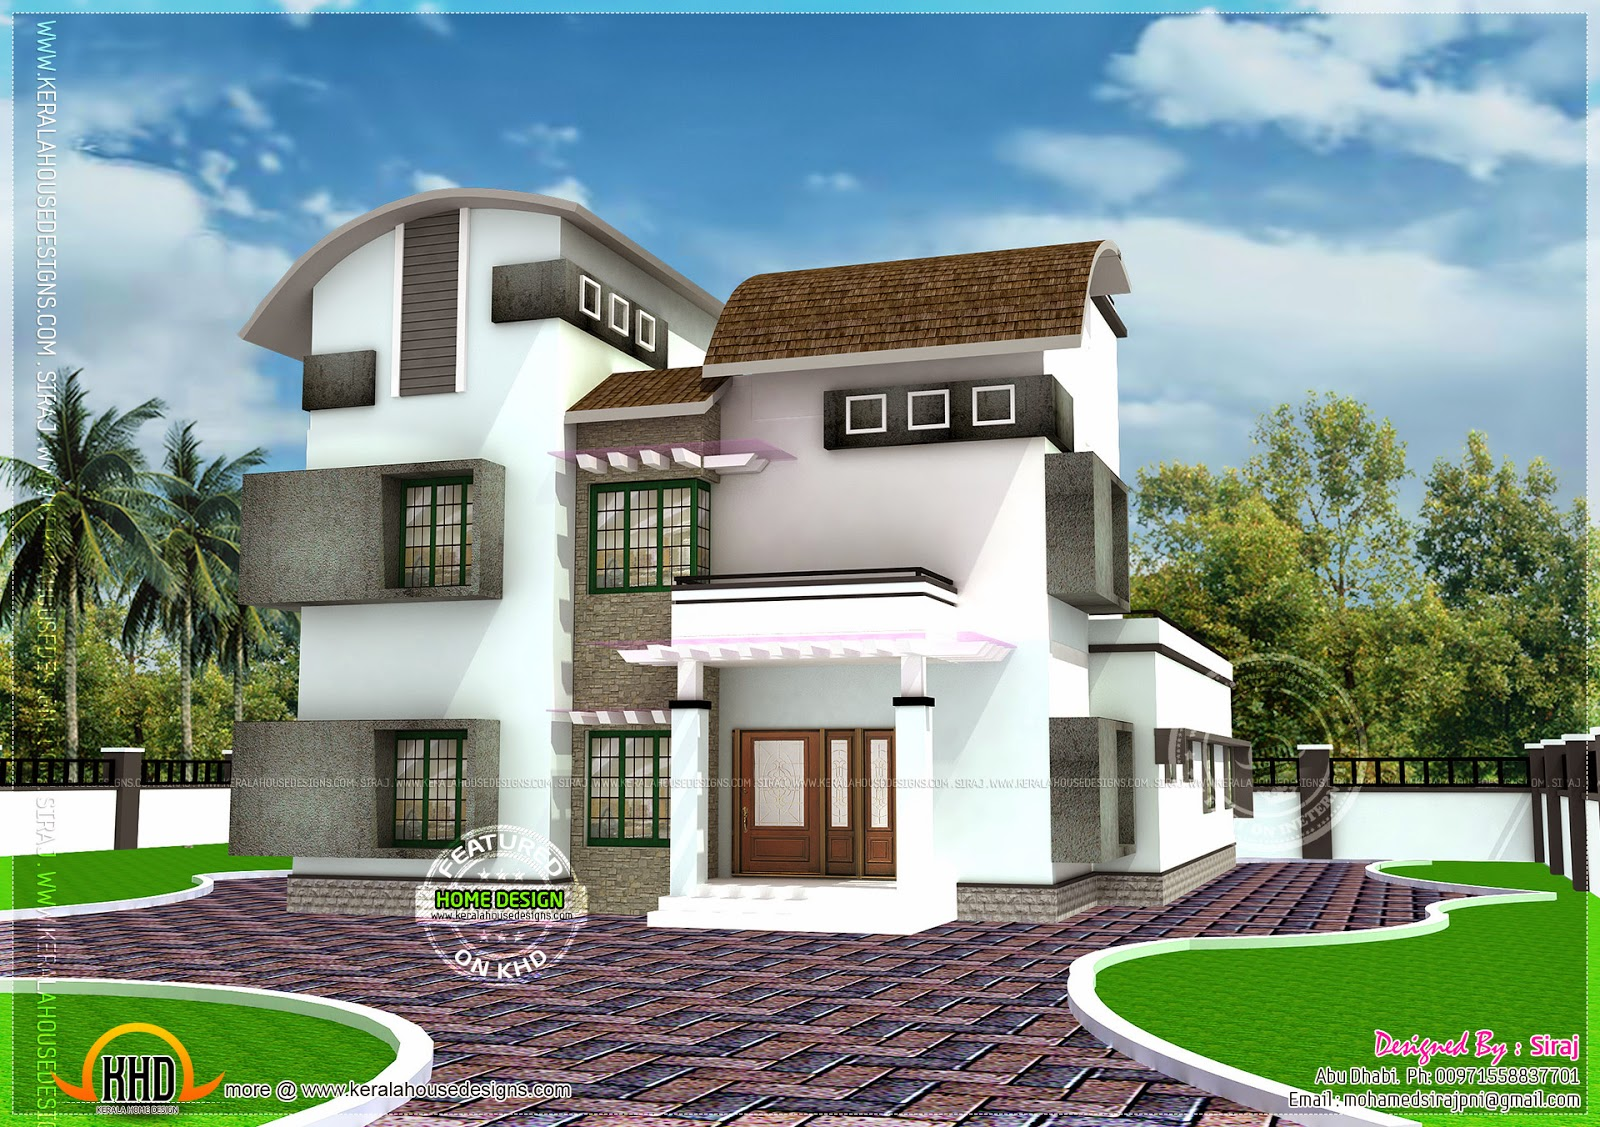 239 square yards modern house kerala home design and 200 yards house design